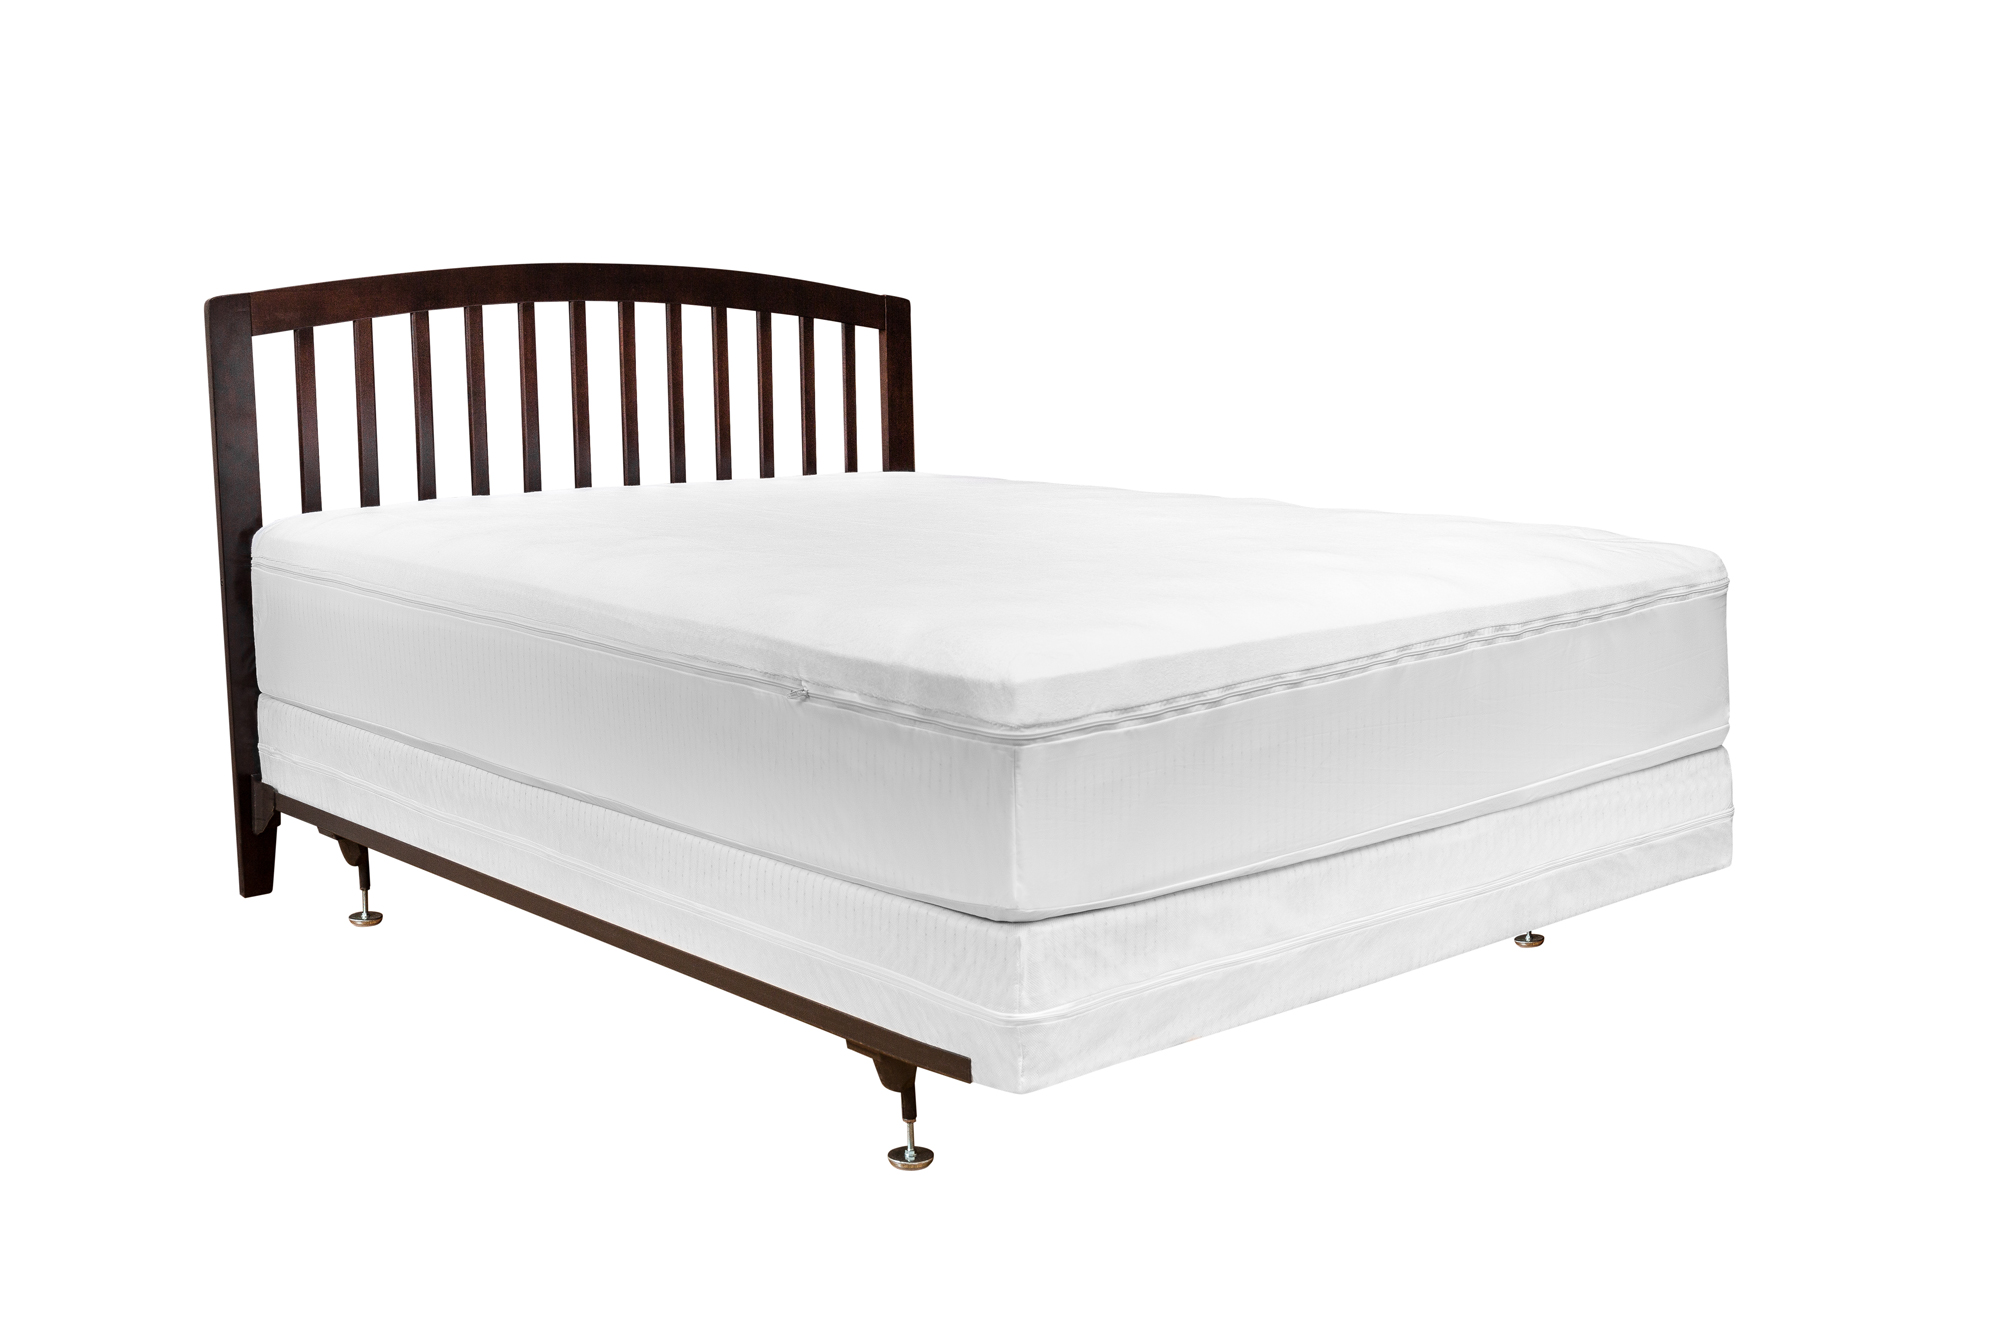 slumberluxe soft terry mattress encasement - Mattress Encasement